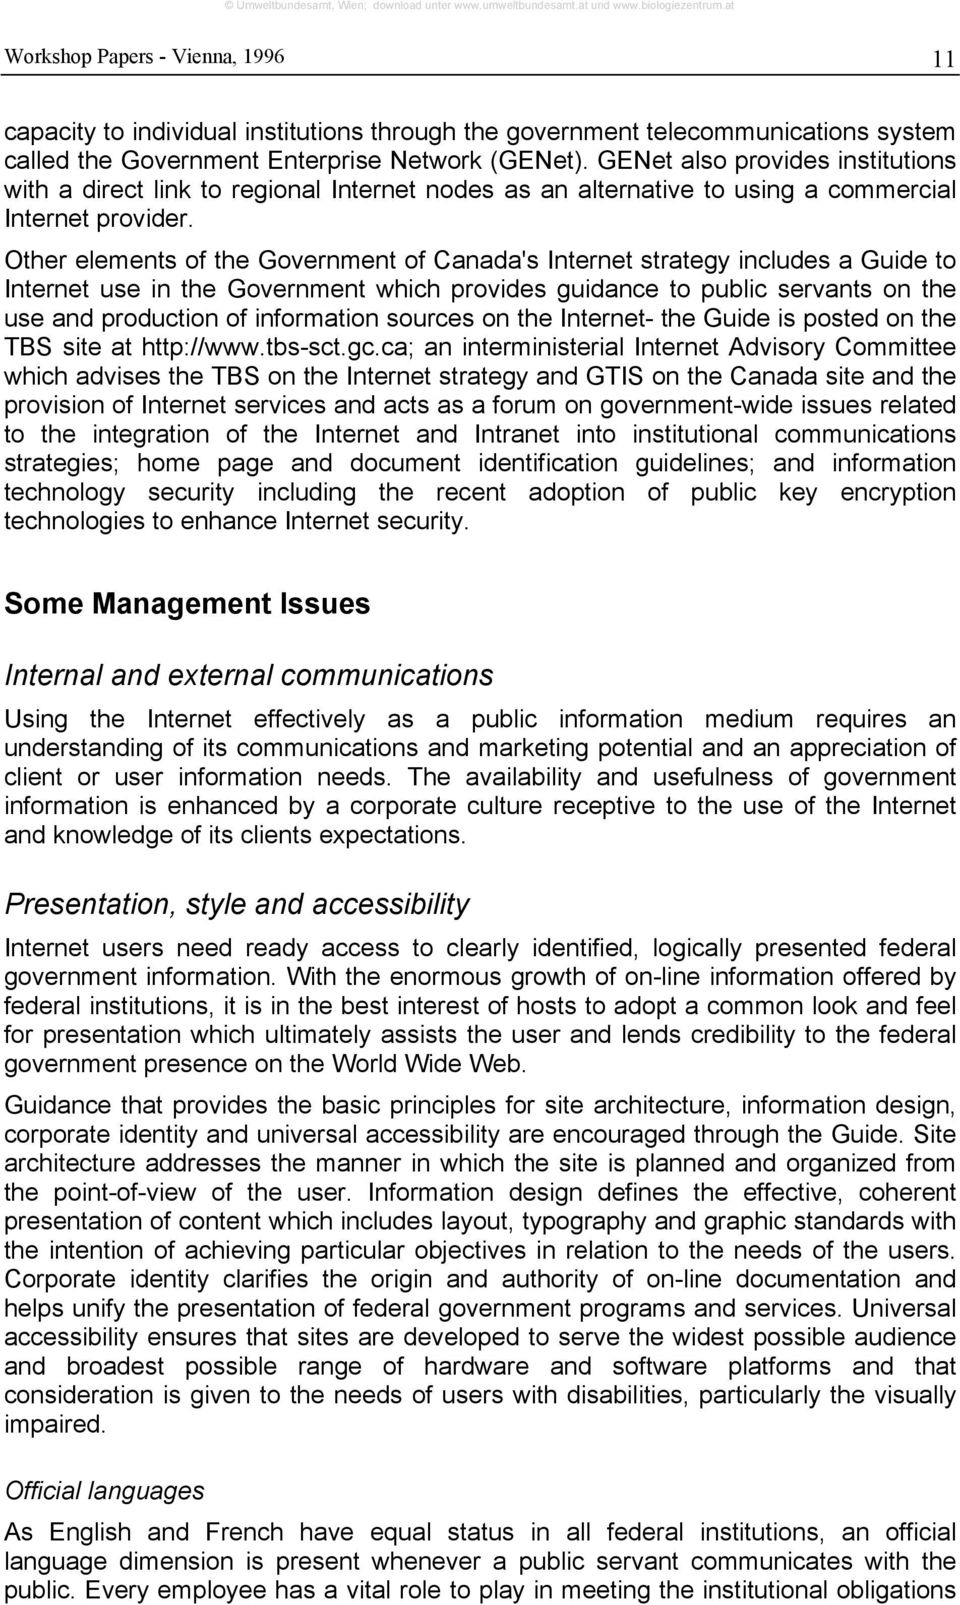 Other elements of the Government of Canada's Internet strategy includes a Guide to Internet use in the Government which provides guidance to public servants on the use and production of information